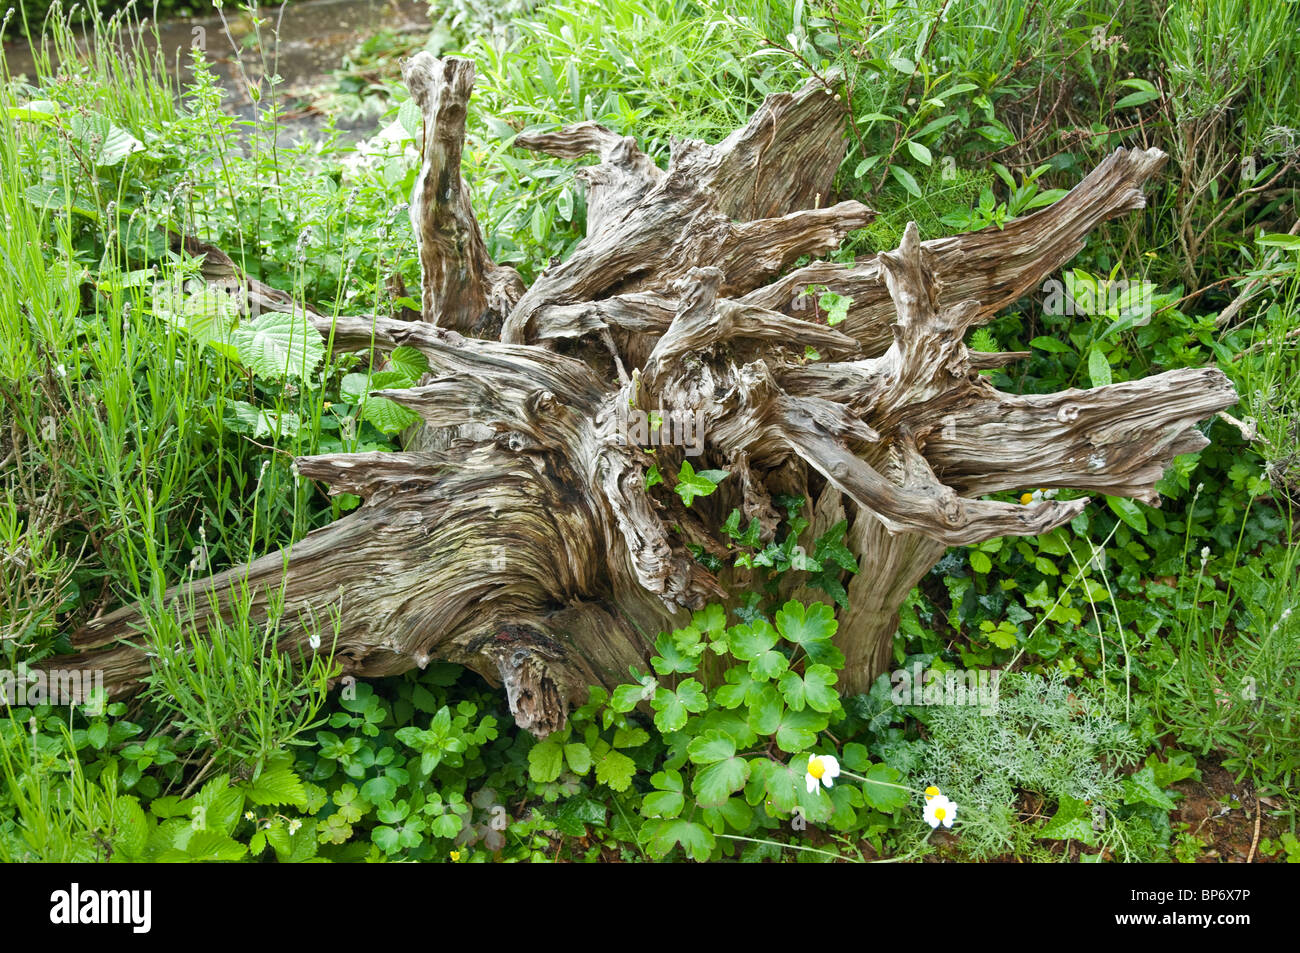 Stock Photo   Stumpery   Attractive Remains Of Tree Stumps   Used For  Sculptural / Decorative Effect In Gardens. Bryans Ground, UK